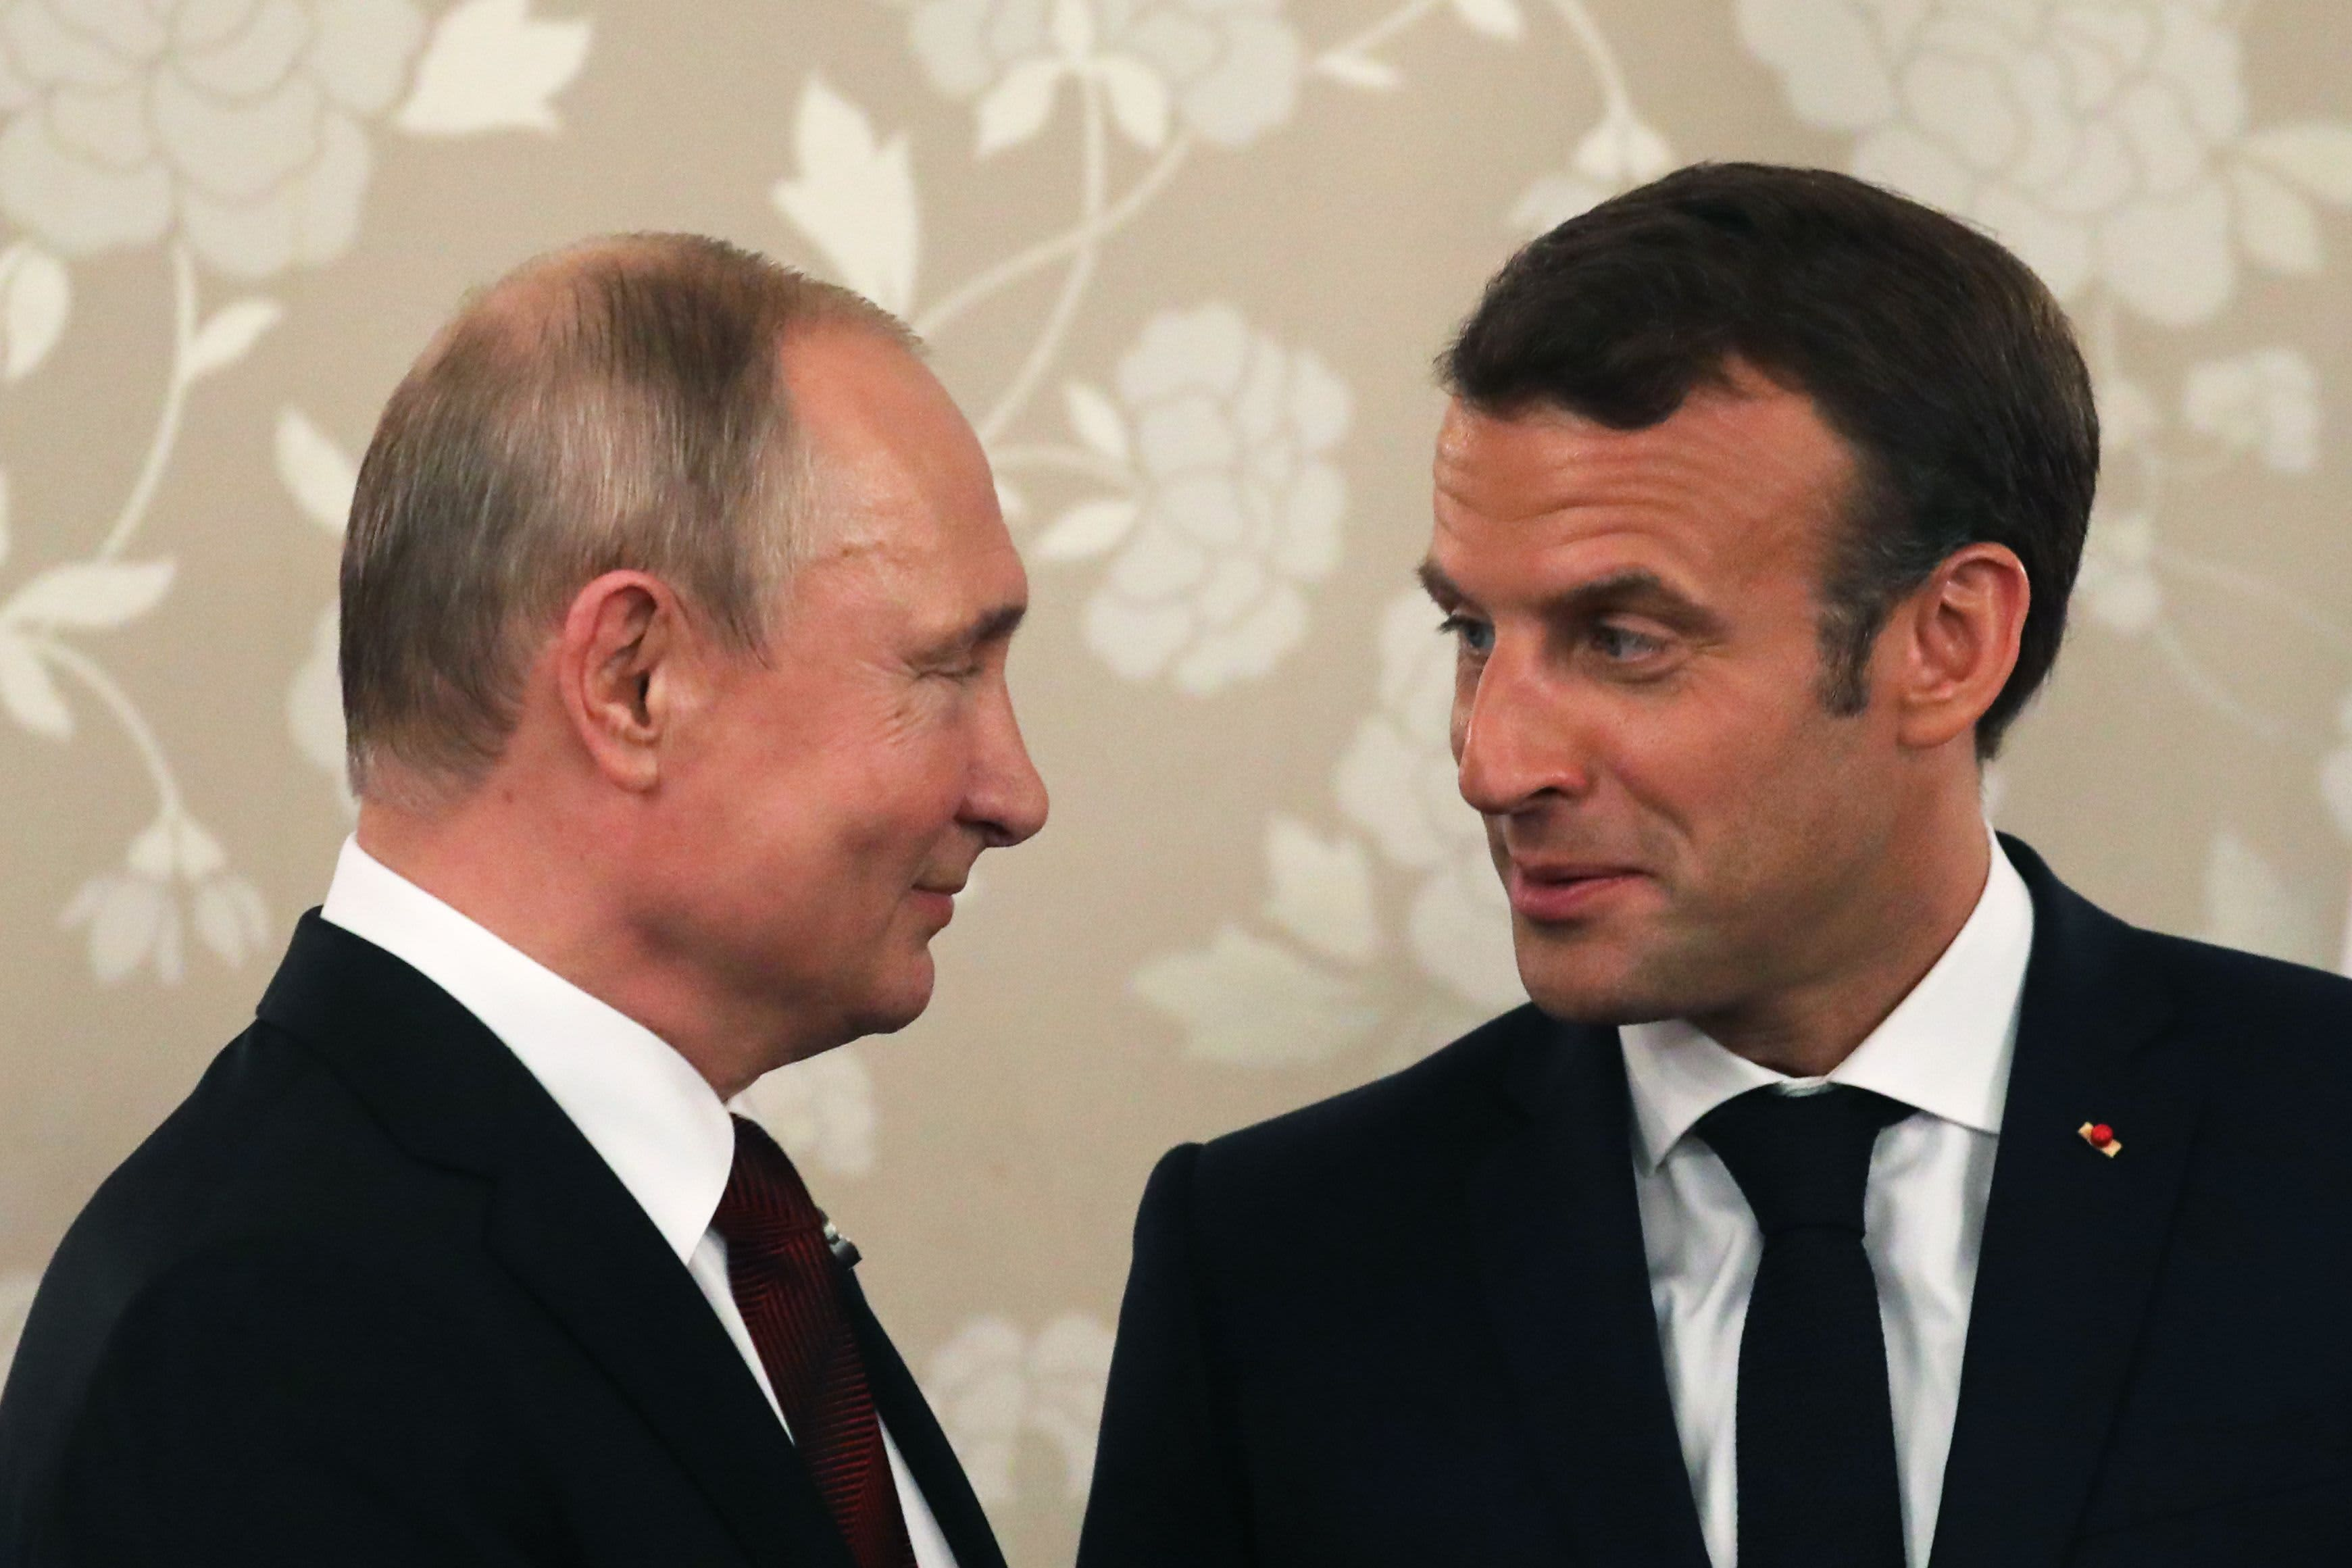 Macron hopes Putin and other leaders can attend a summit on Ukraine